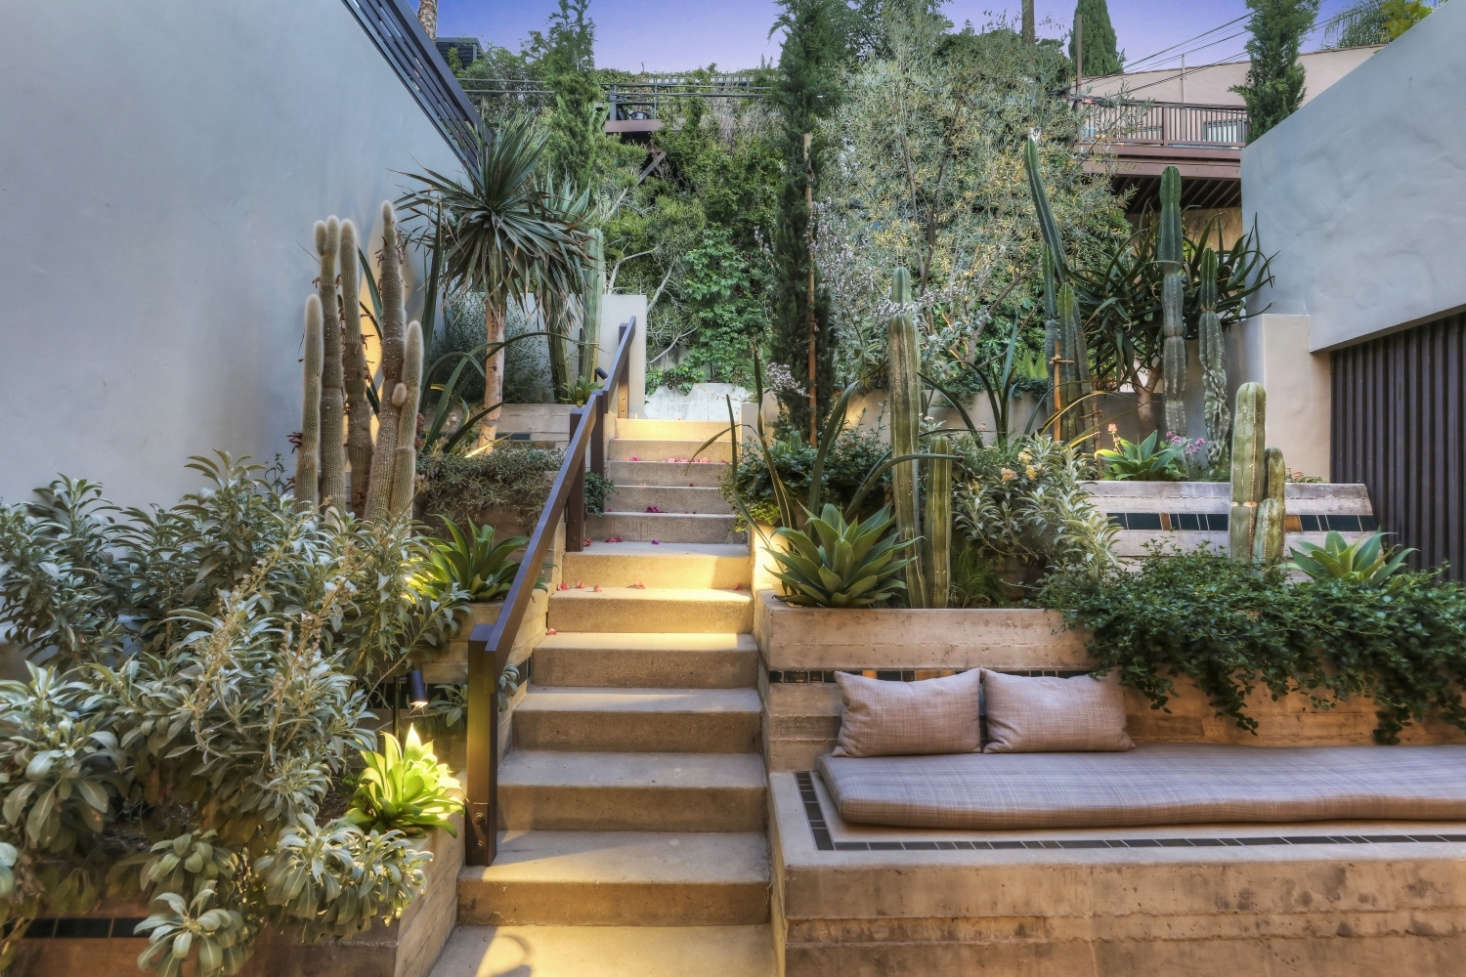 Landscape design firm Terremoto filled the courtyard with drought-resistant and native plants.